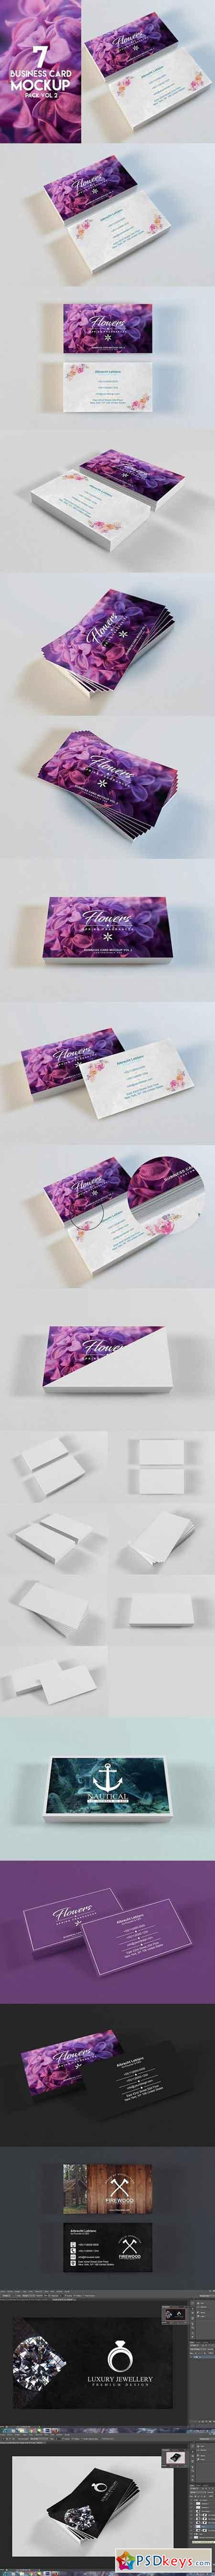 Business Card Mockup Vol 2 844146